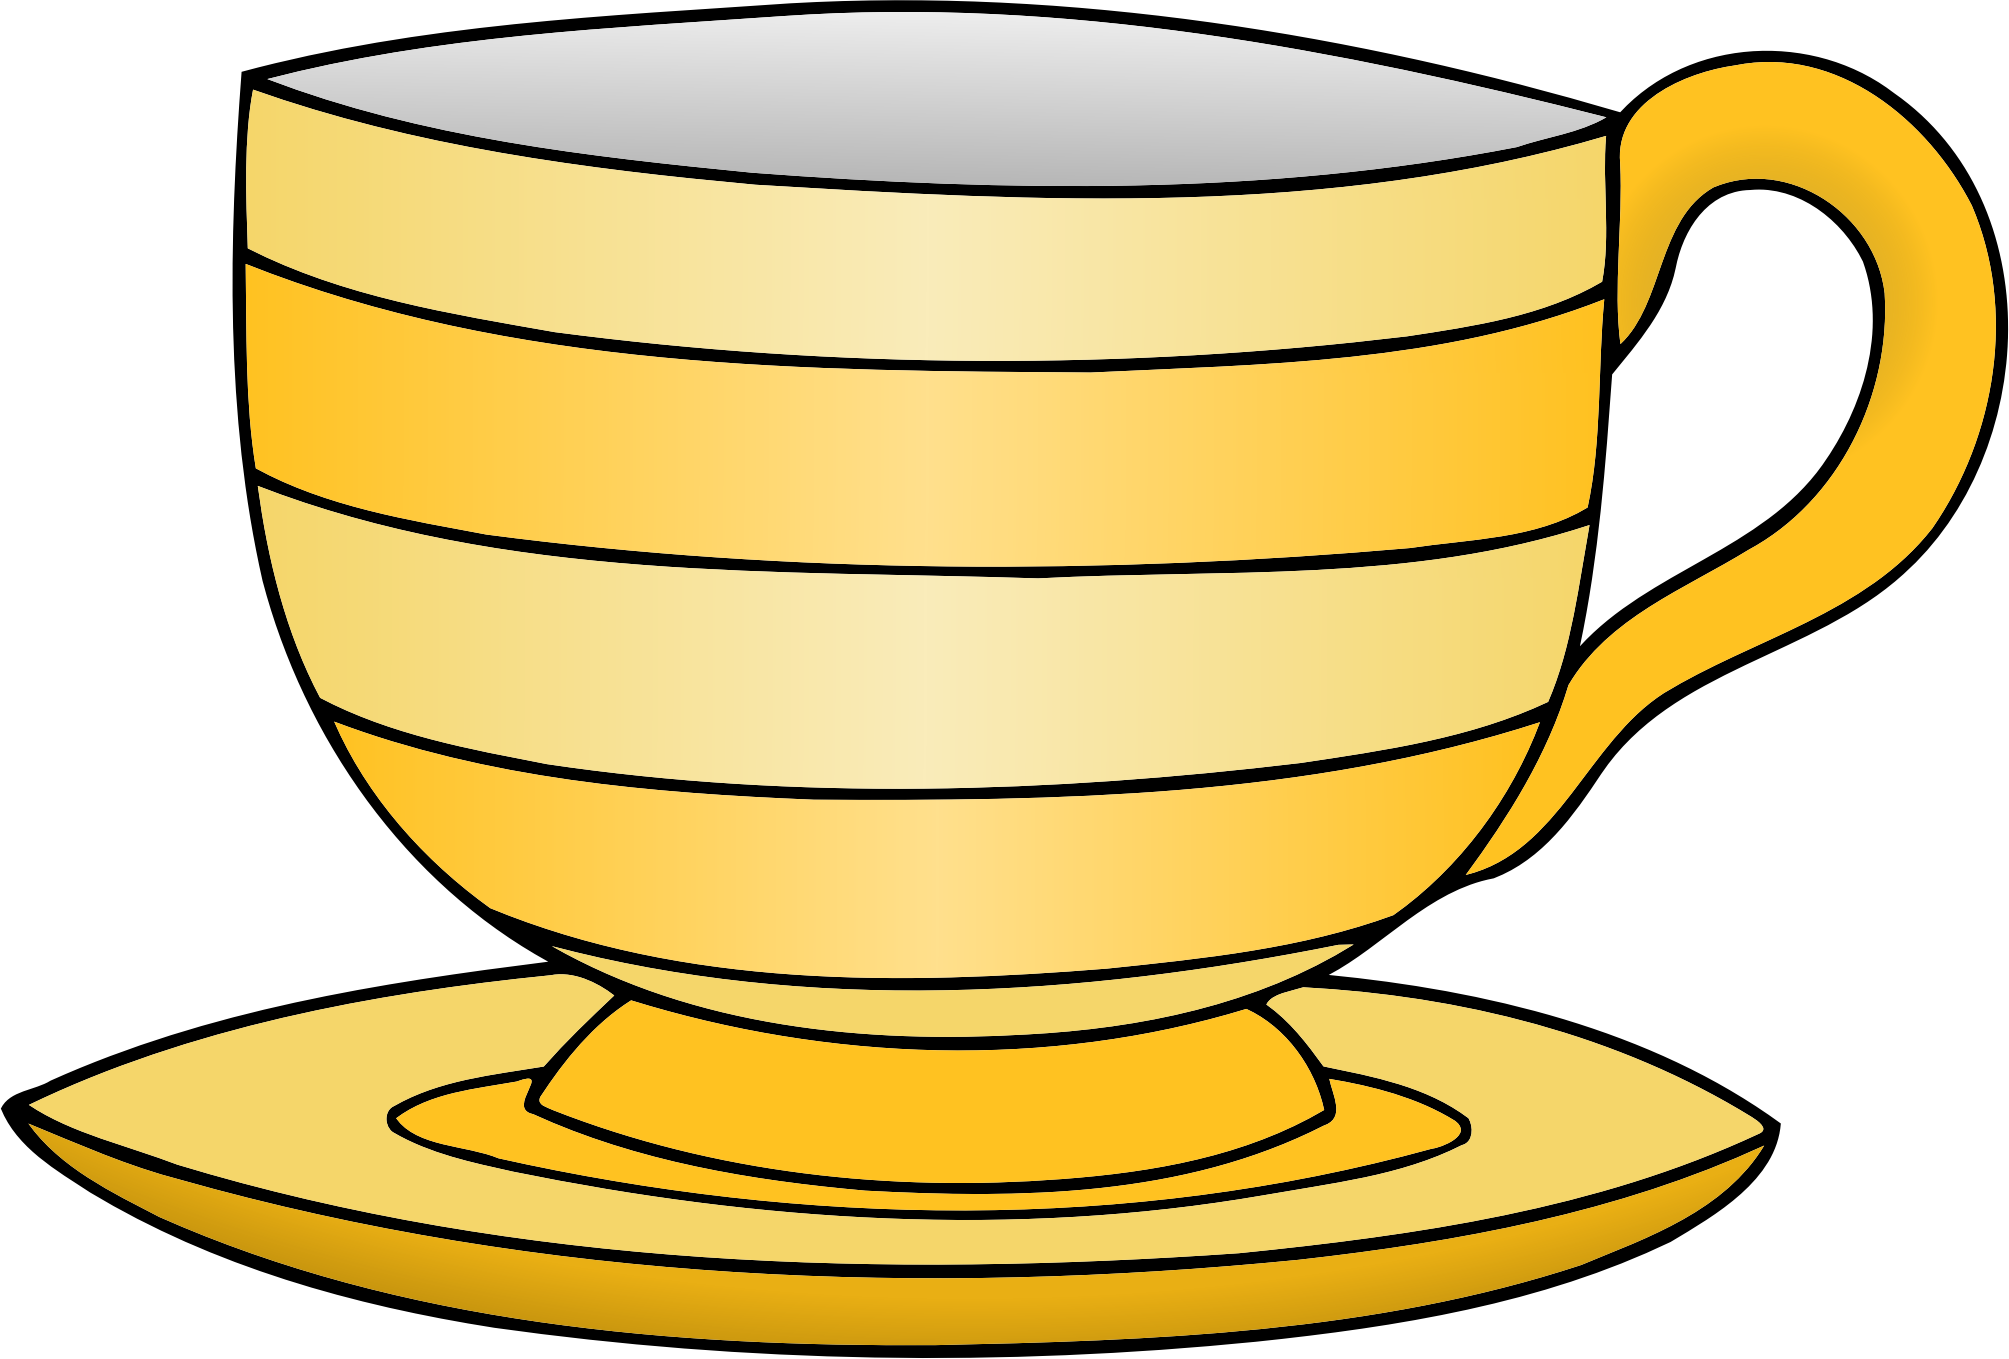 png royalty free library Big image png. Teacup clipart images